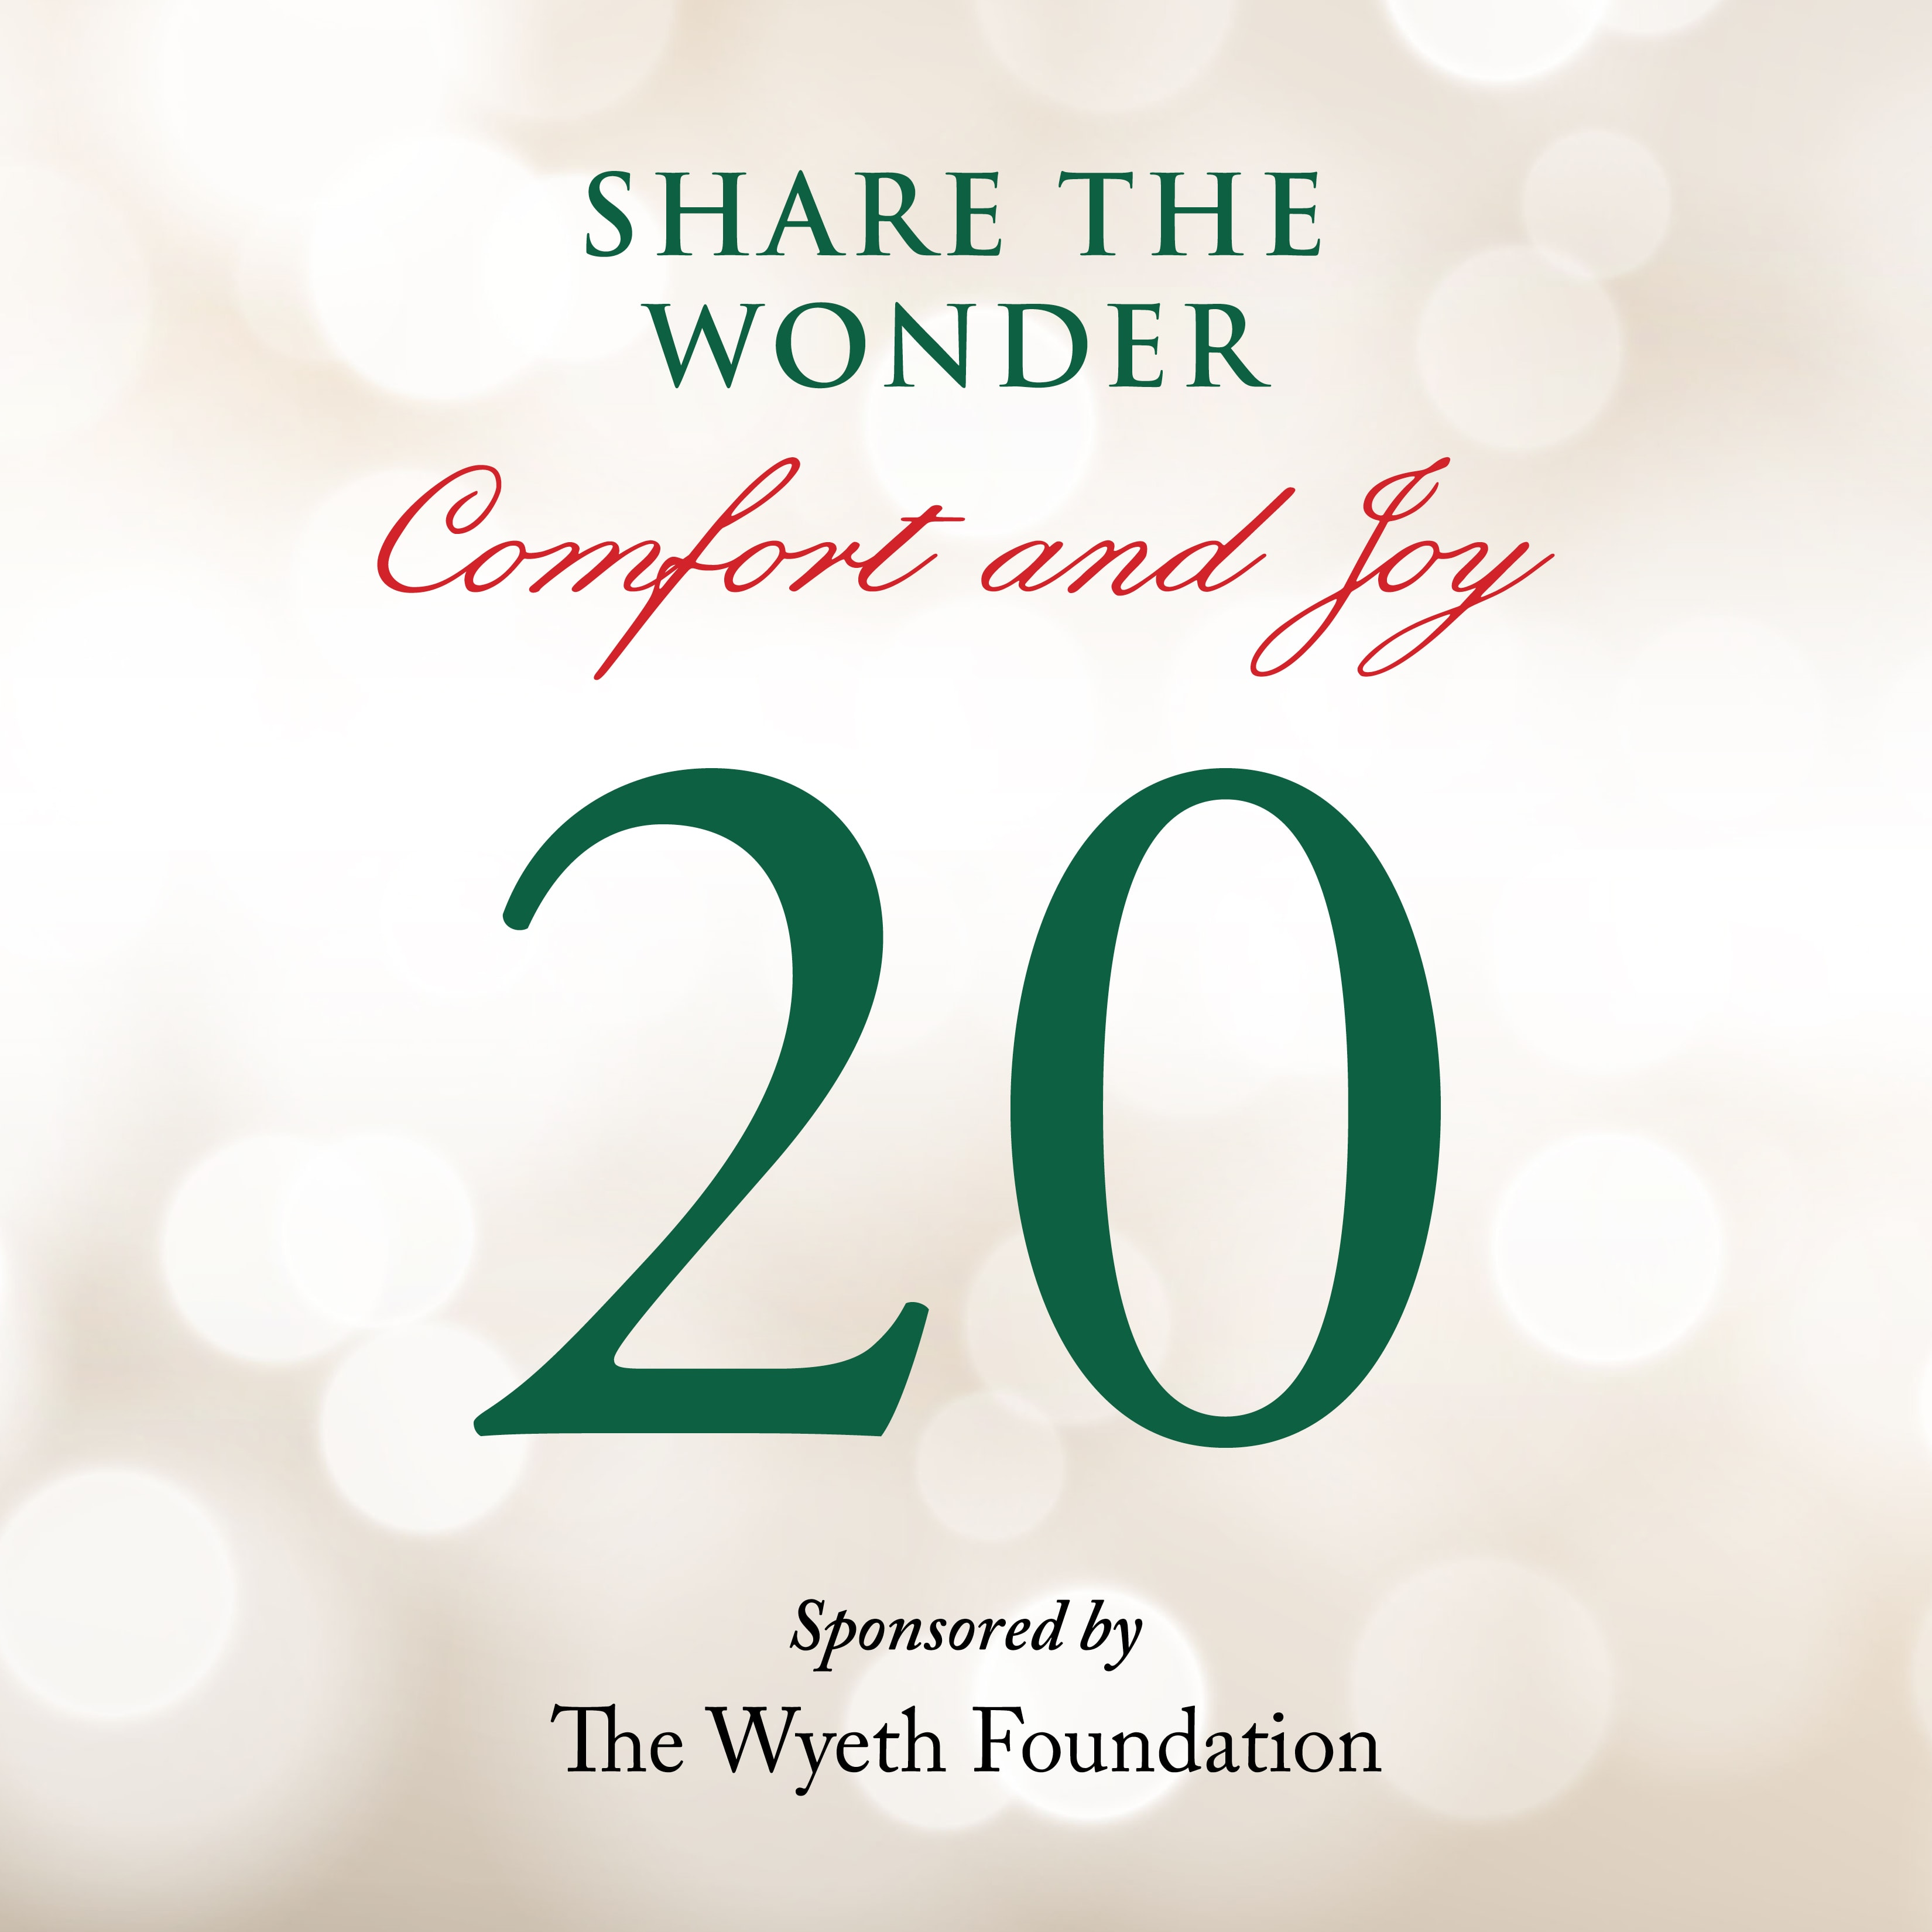 Day 20 of Share the Wonder: December 17